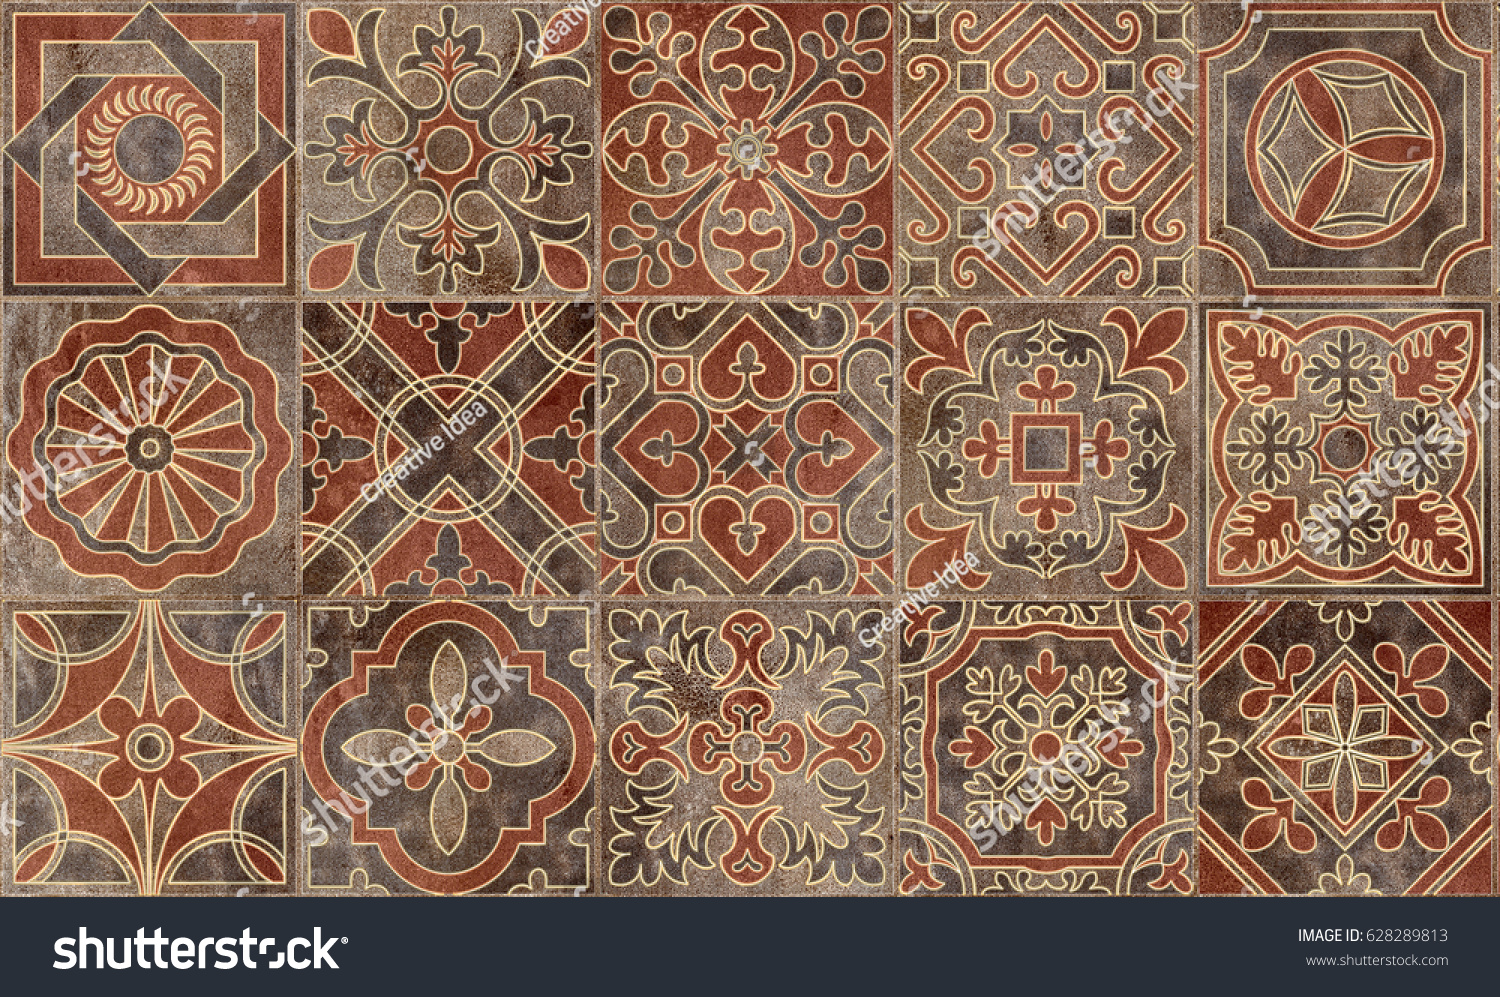 Home decorative wall tiles design pattern stock illustration home decorative wall tiles design pattern background dailygadgetfo Images